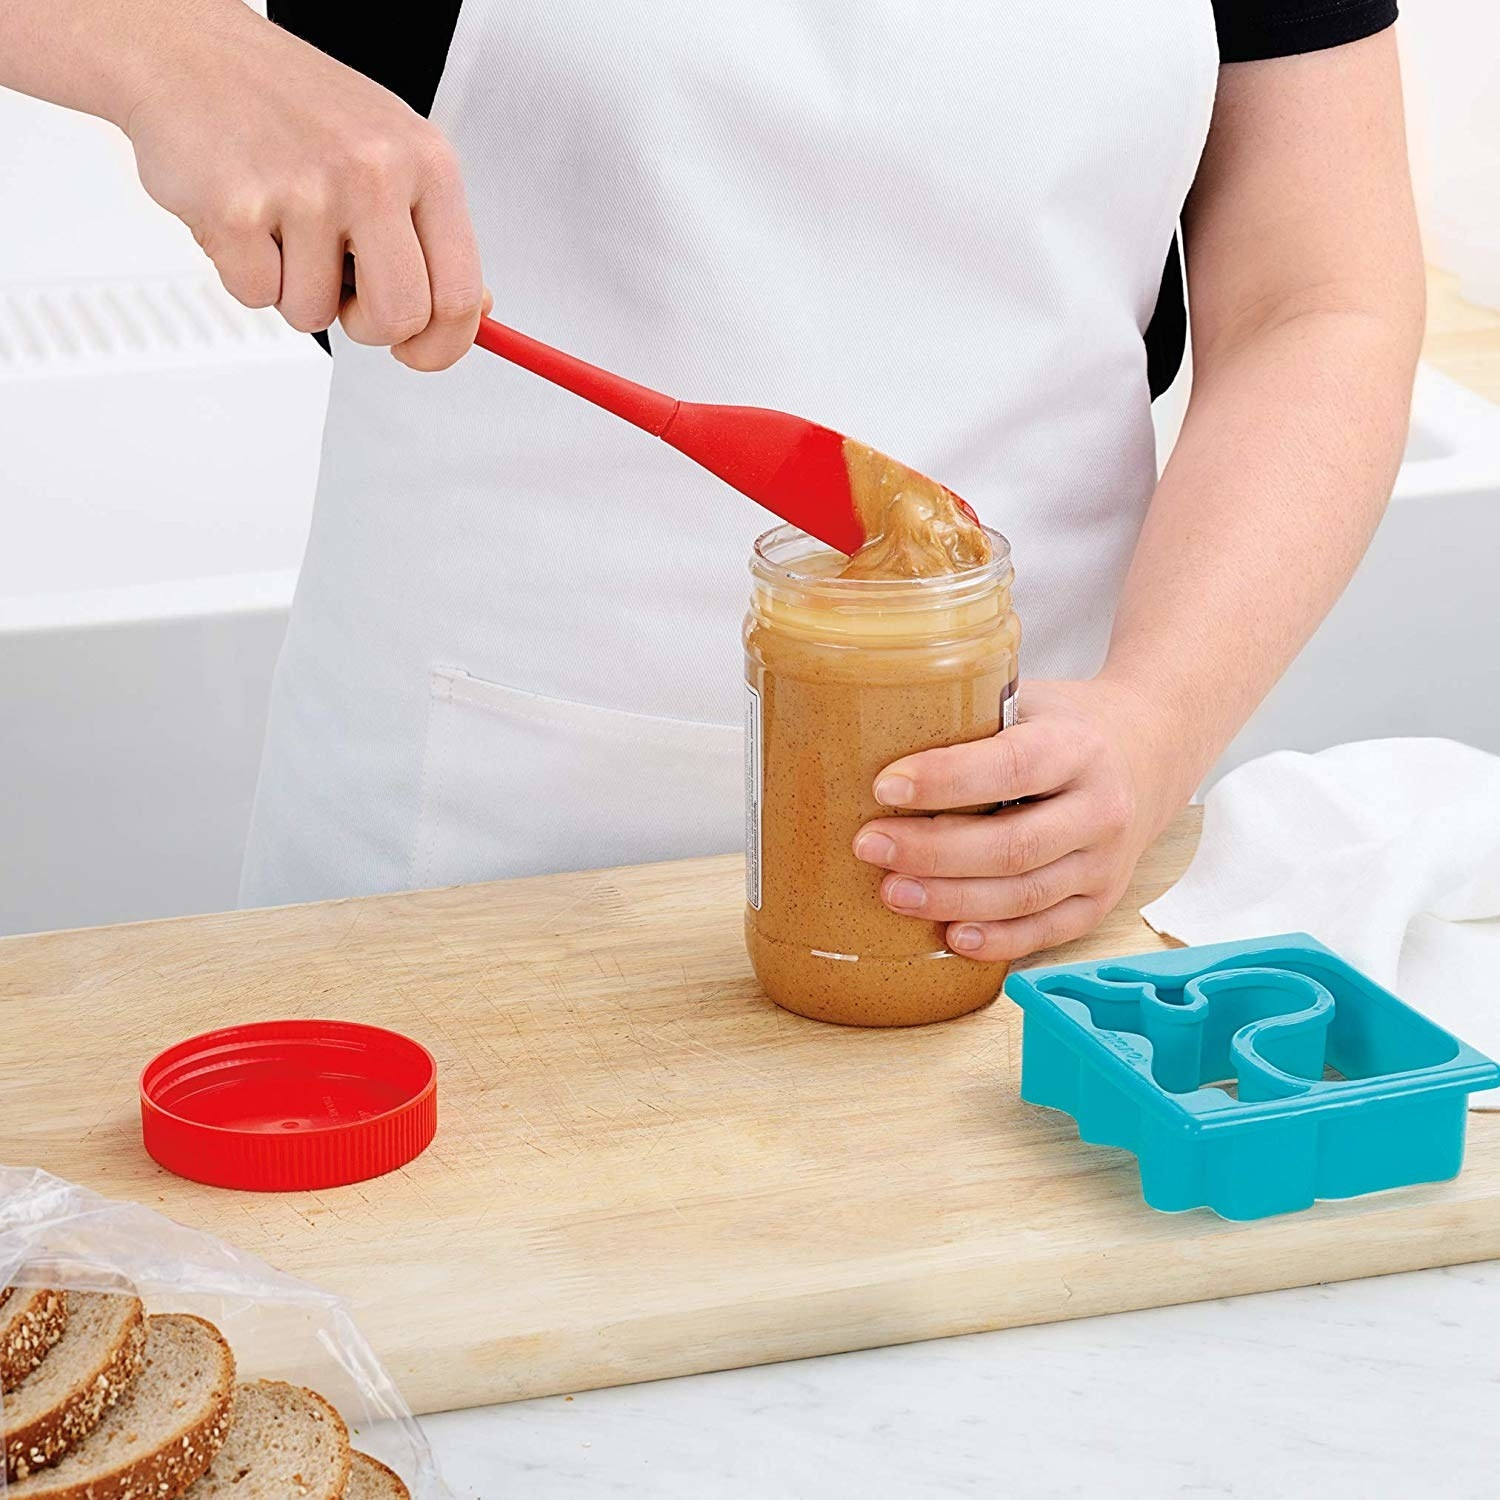 Model scooping peanut butter with the scraper